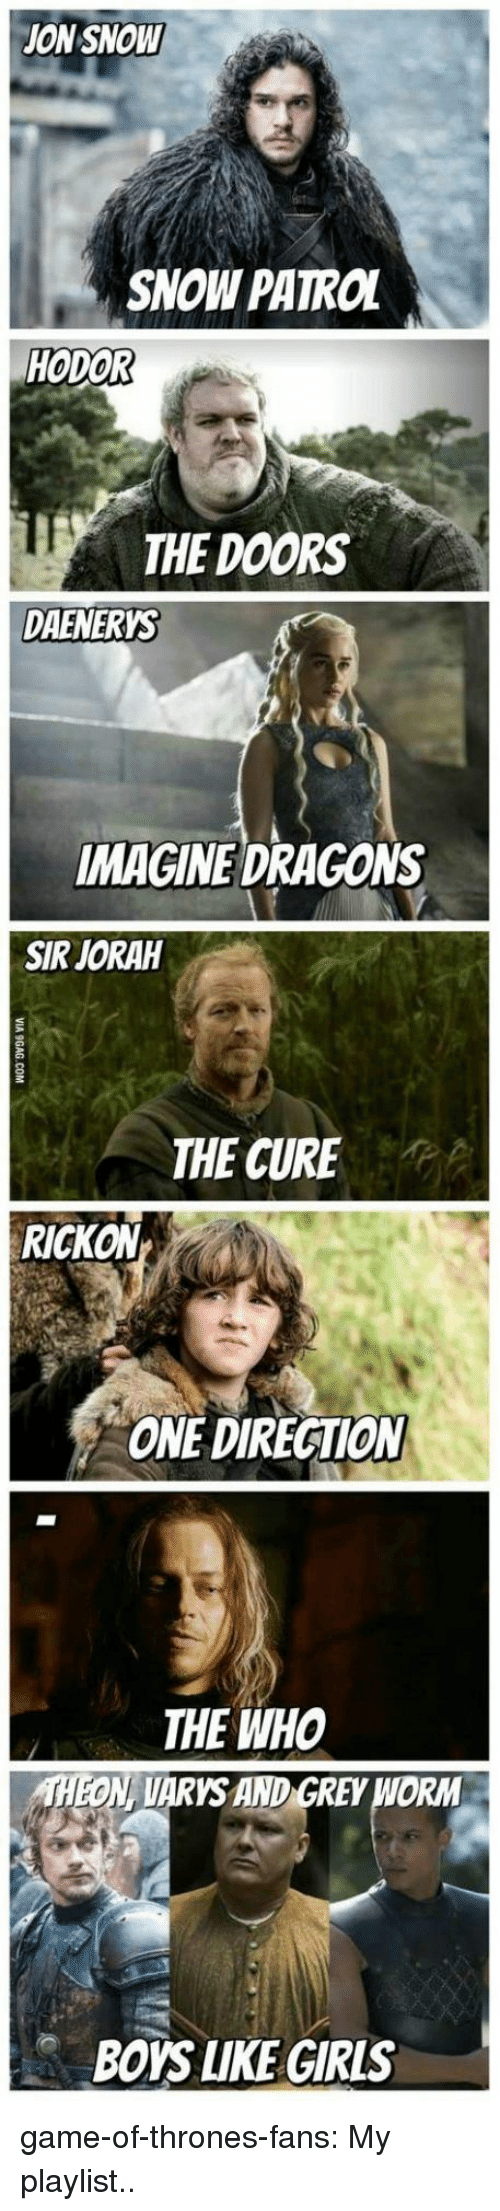 Game of Thrones, Tumblr, and Blog: ON SNOW  SNOW PATROL  HODOR  THE DOORS  DAENERYS  IMAGINE DRAGONS  SIR JORAH  THE CURE  RICKON  ONE DIRECTIOM  THE WHO  THEON, VARYS AND GREY WORM  BOYS LIKE GIRIS game-of-thrones-fans:  My playlist..